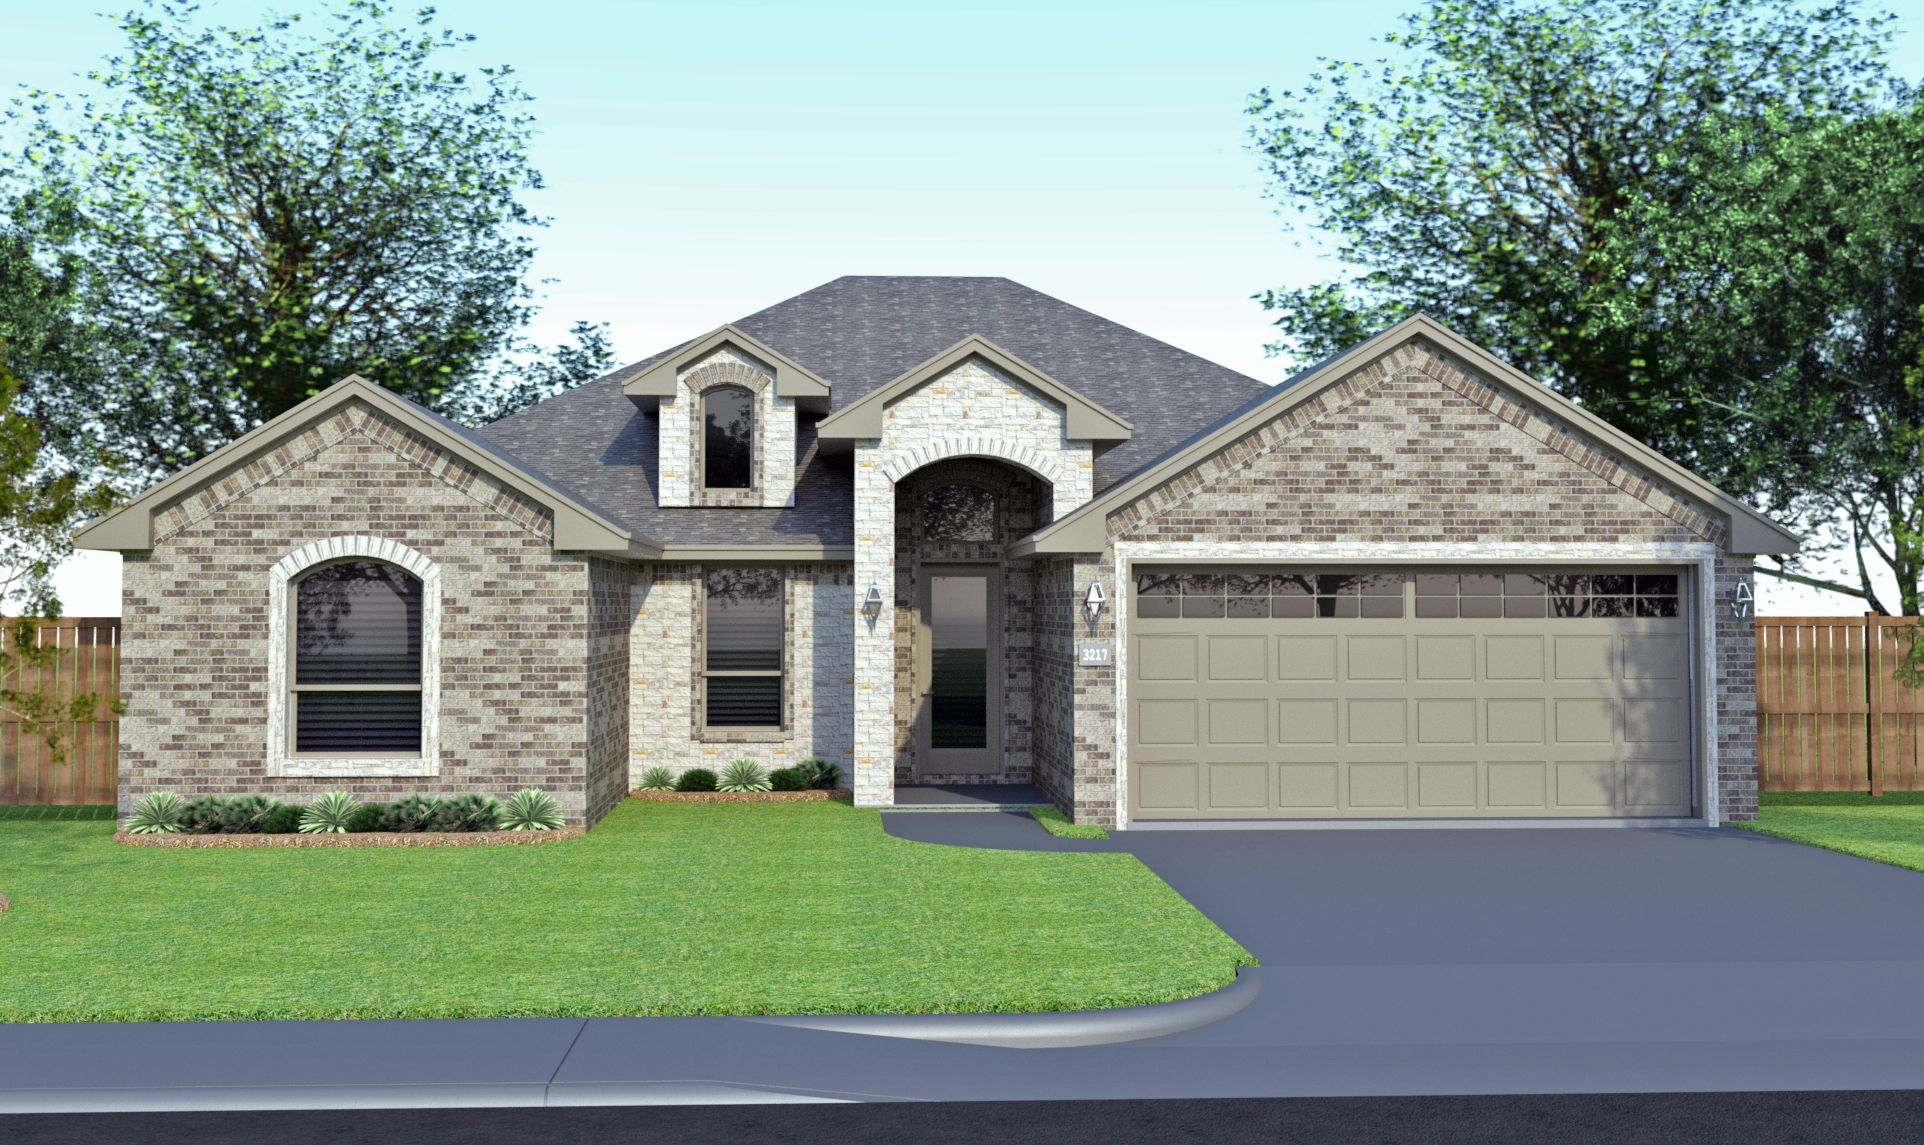 Francesca stone elevation b uses permian homes color brick scheme d2 and south texas blend acme natural stone